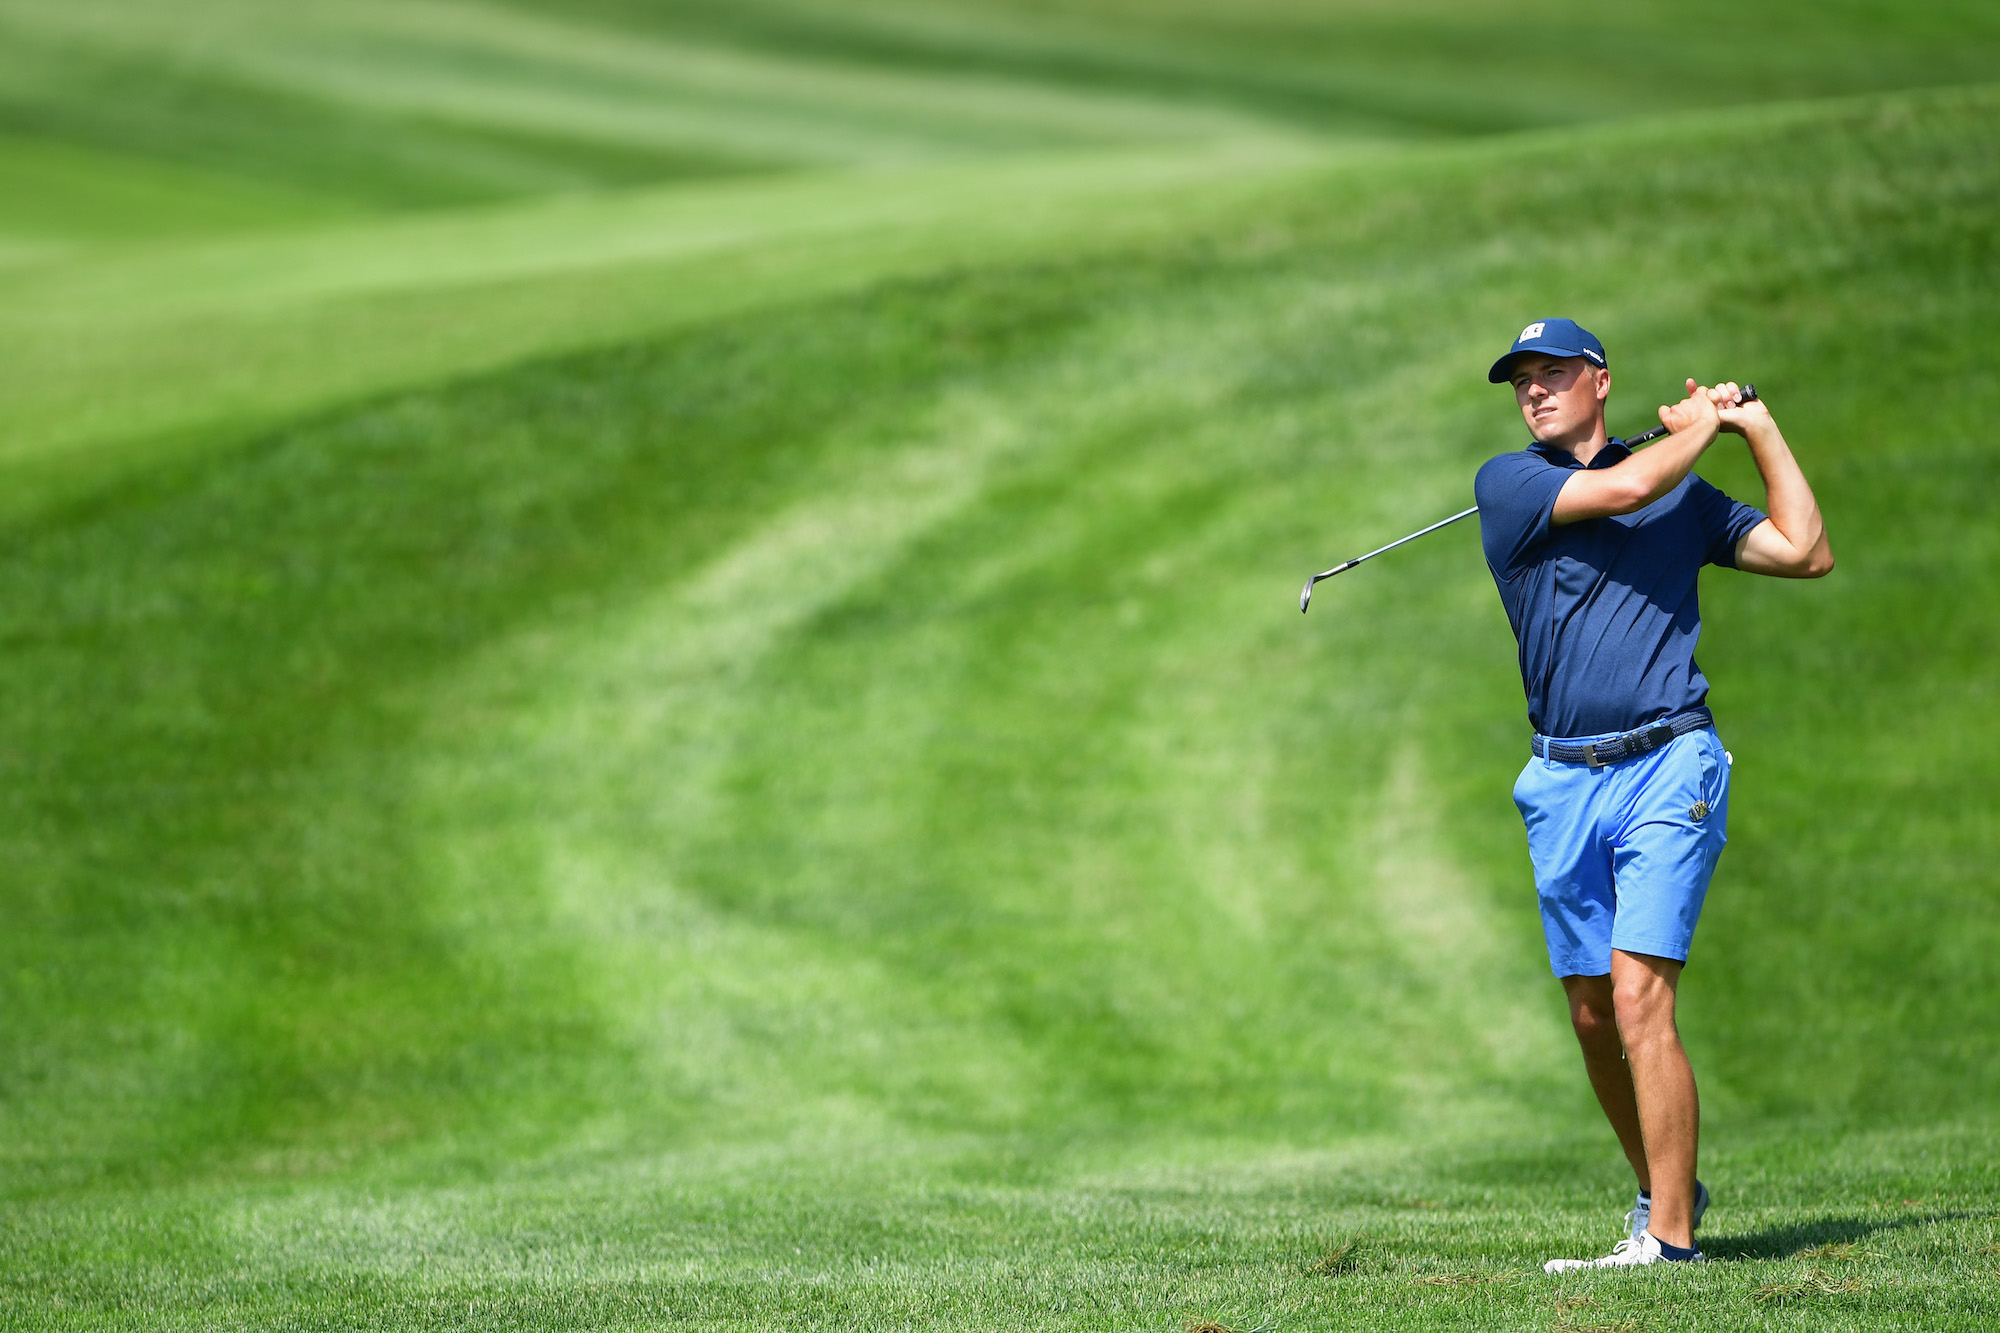 2018 PGA Championship: Preview Day 1 - On the Course